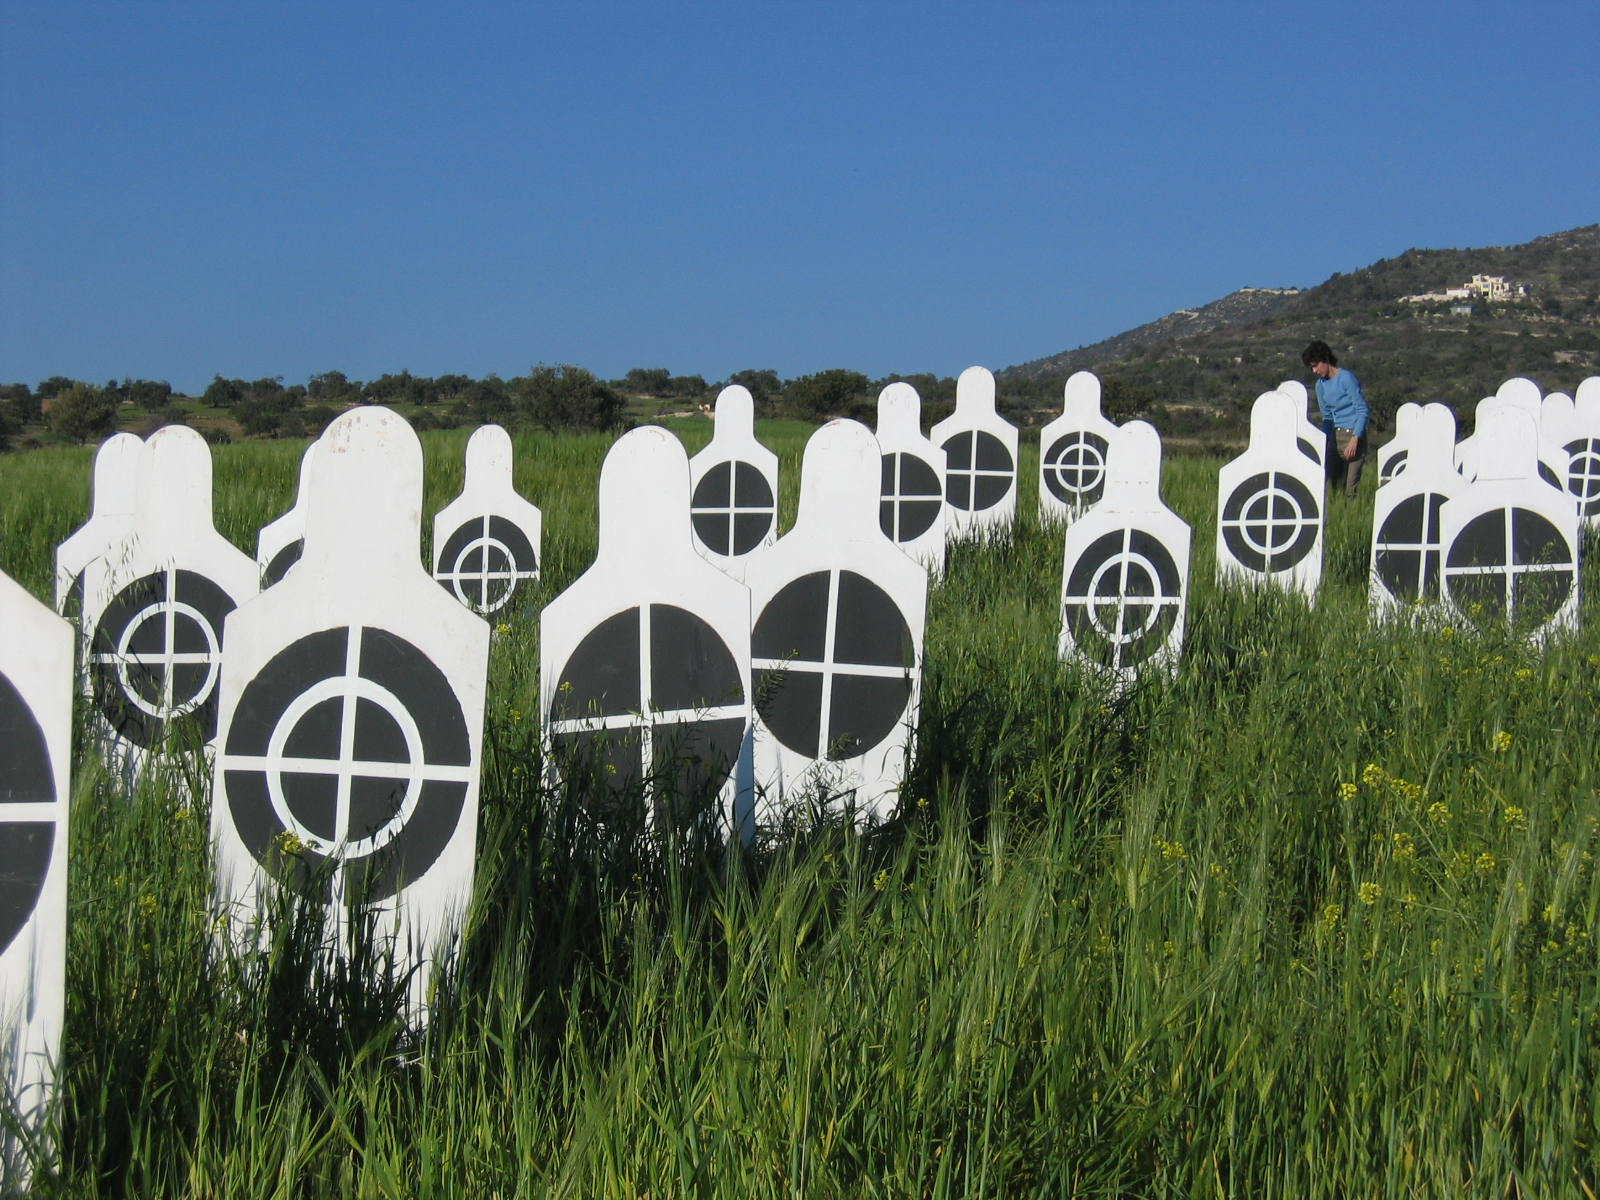 Human Targets in a field